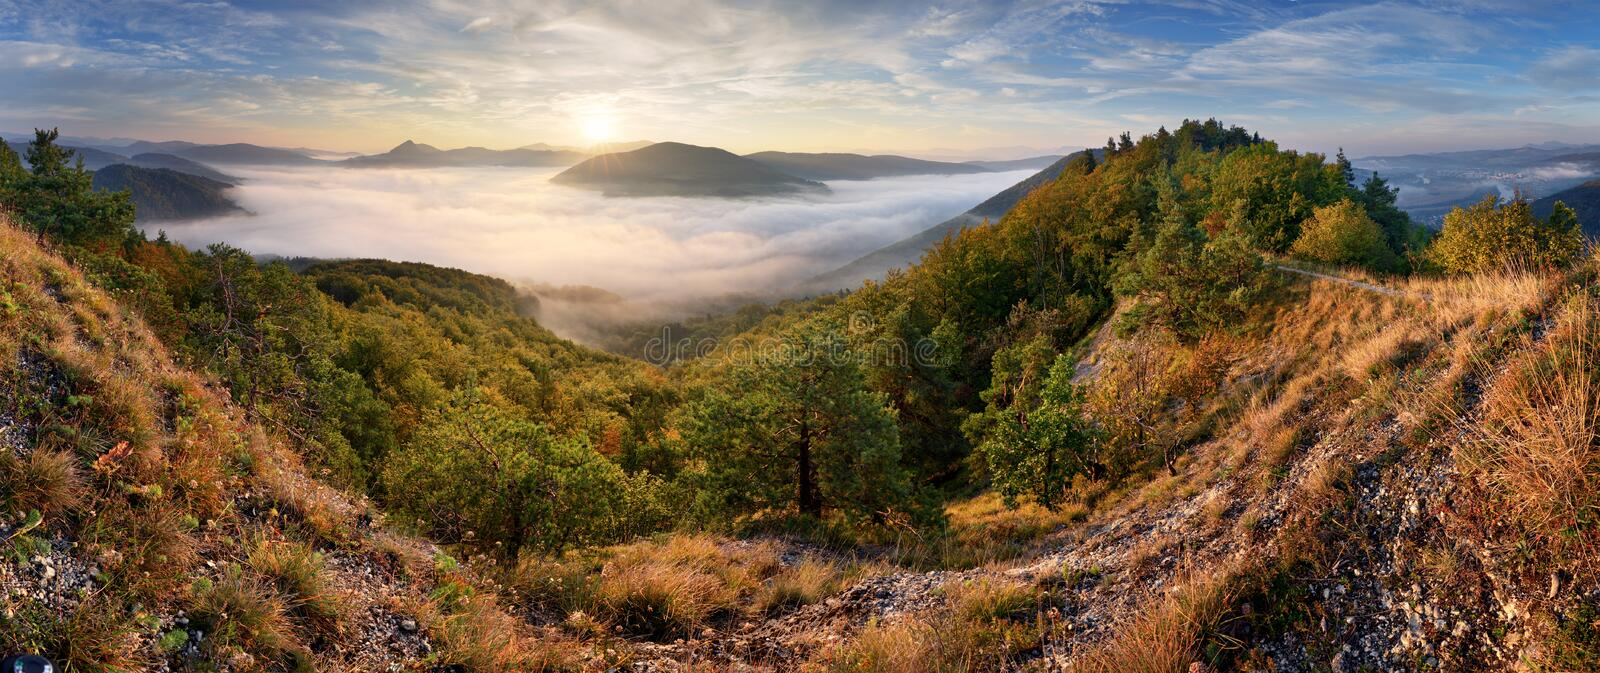 Autumn sunrise above mist and forest landscape, Slovakia, Nosice royalty free stock photo